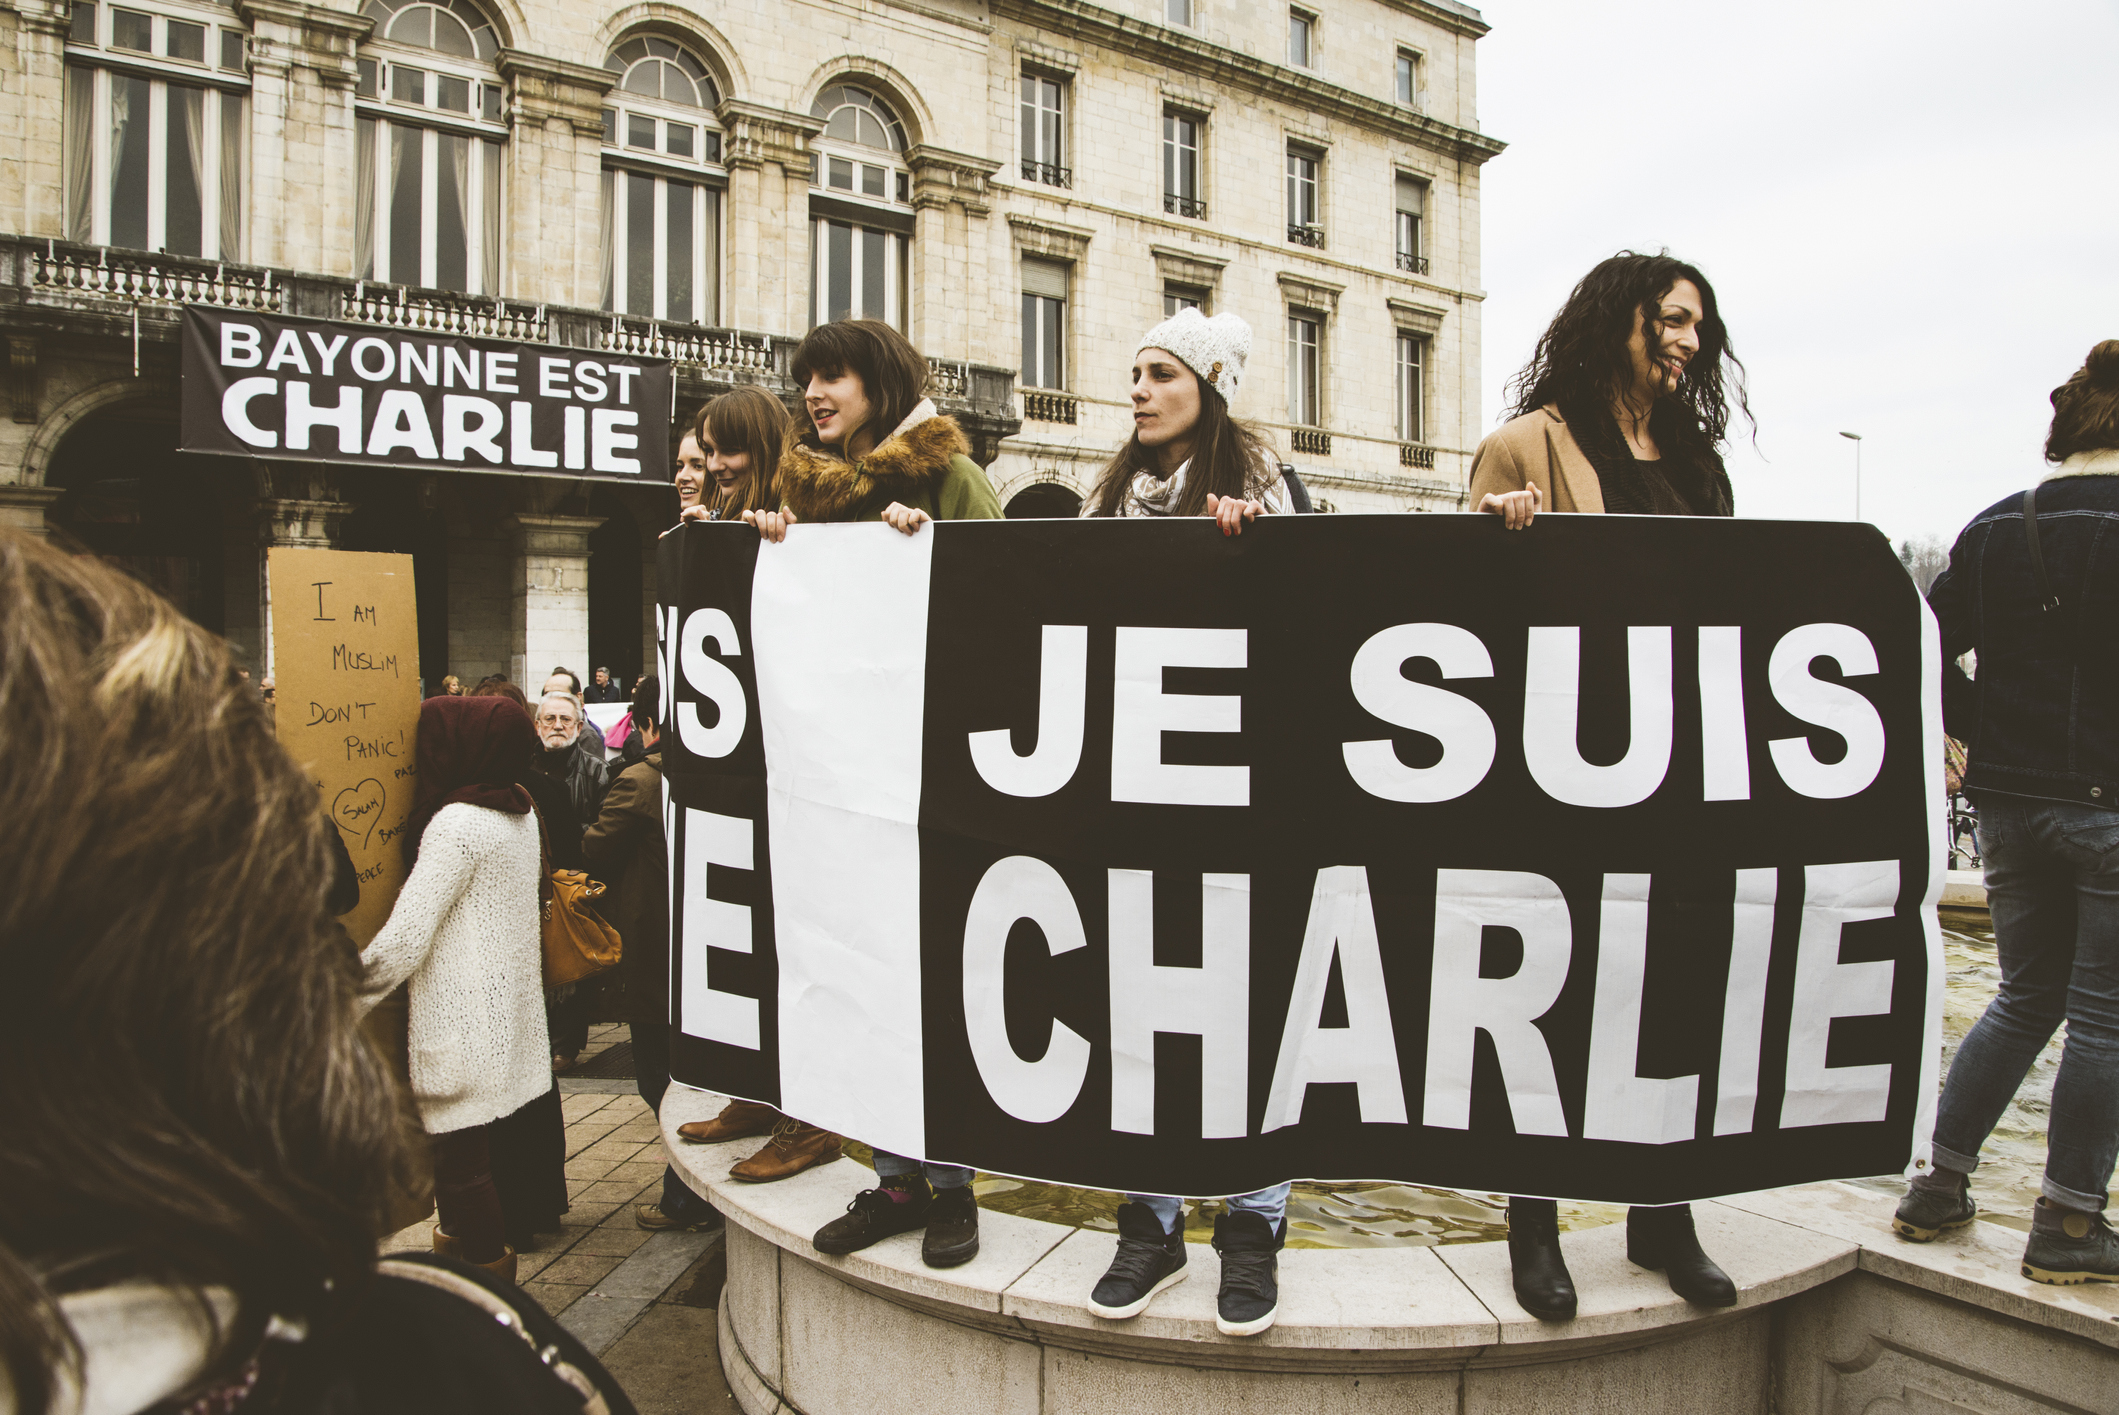 A protest in France after the terrorist attack on Charlie Hebdo.